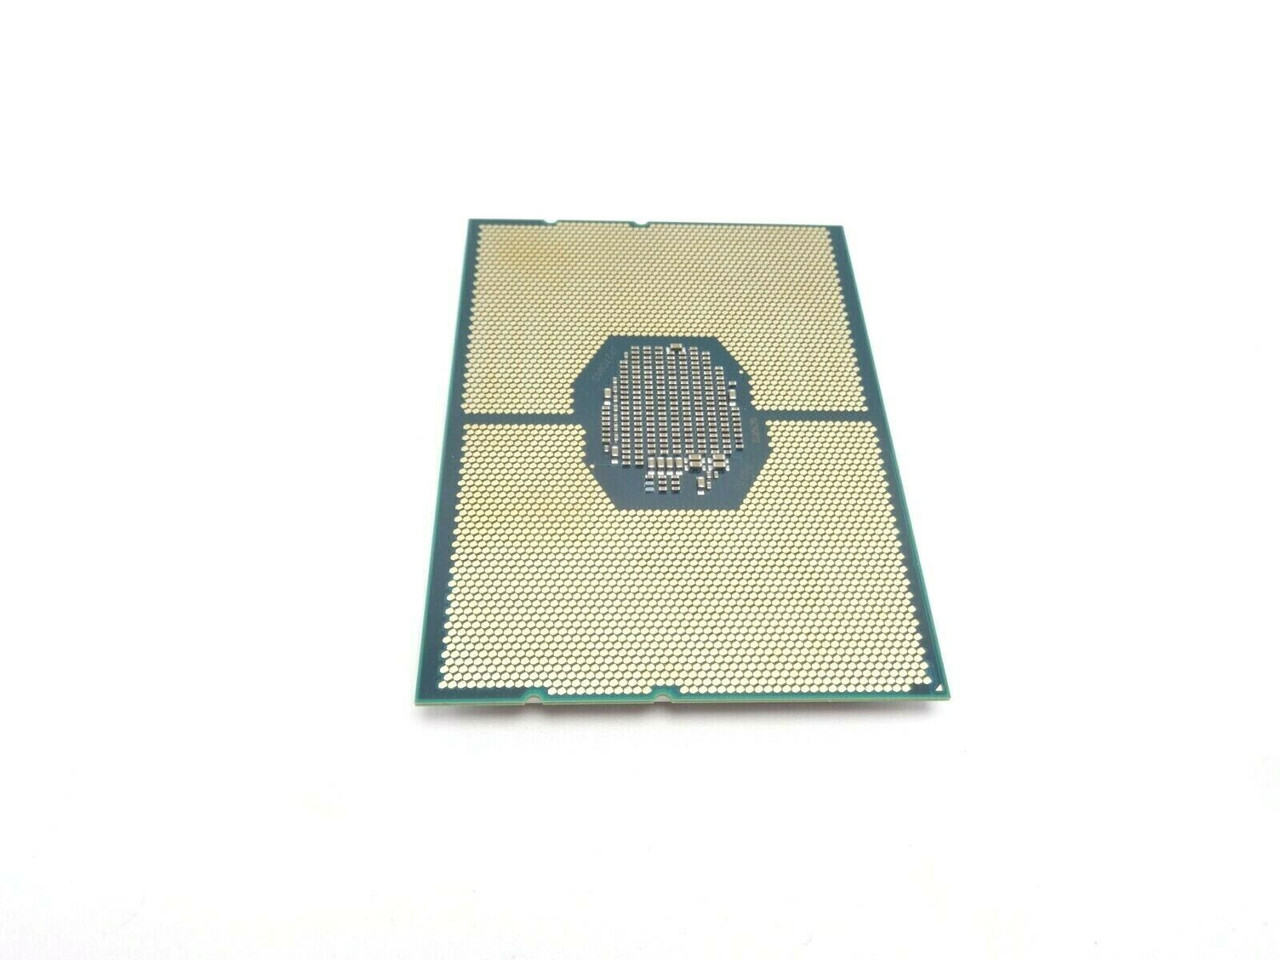 Intel Xeon Silver SR3GK 10Core 2.2Ghz 13.75MB 4114 Processor